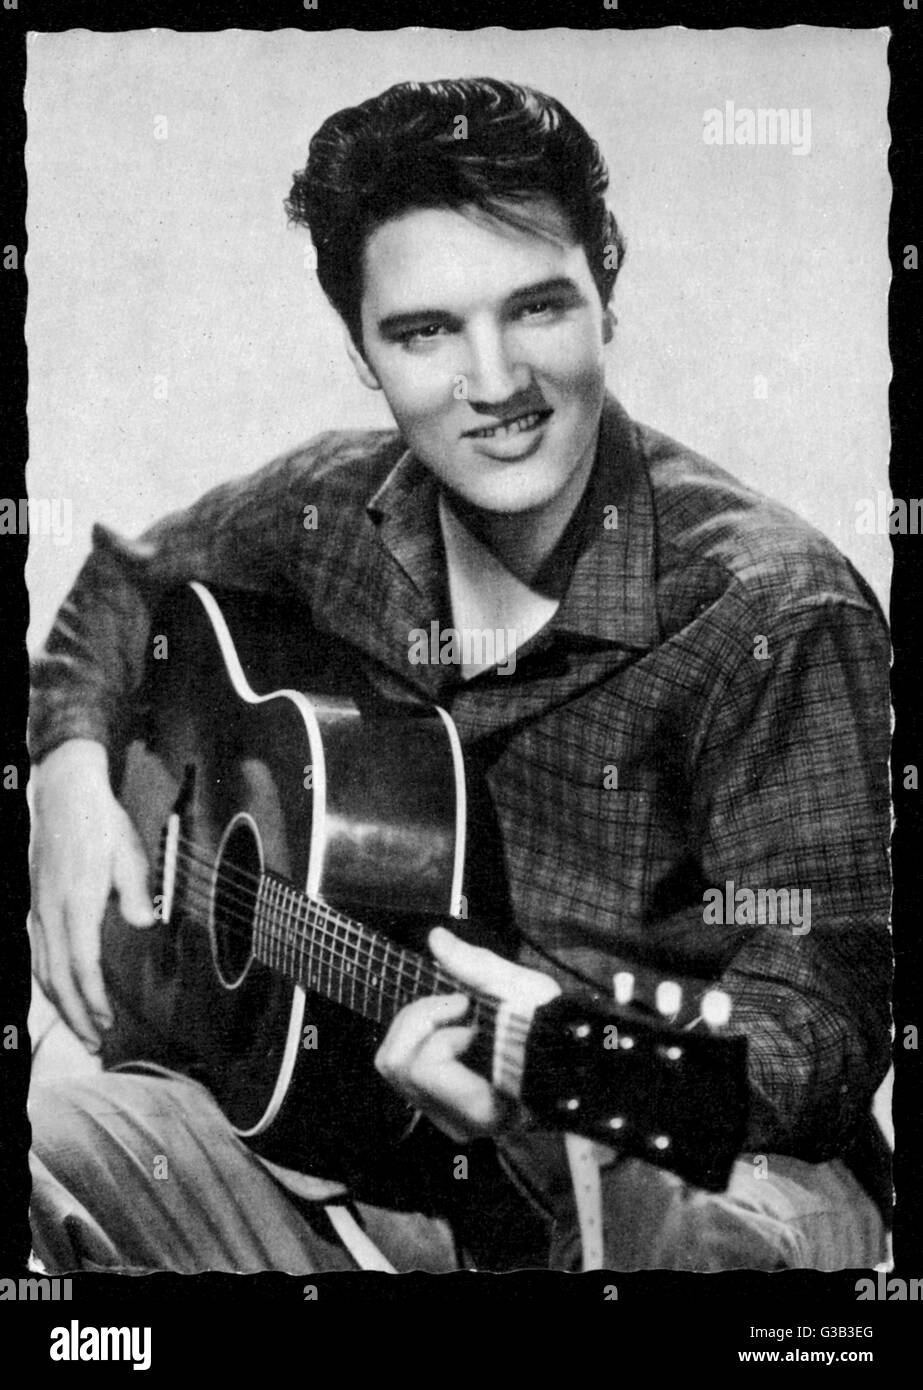 ELVIS PRESLEY  American pop singer, guitarist  and actor in musical films,  seen here with his guitar      Date: - Stock Image